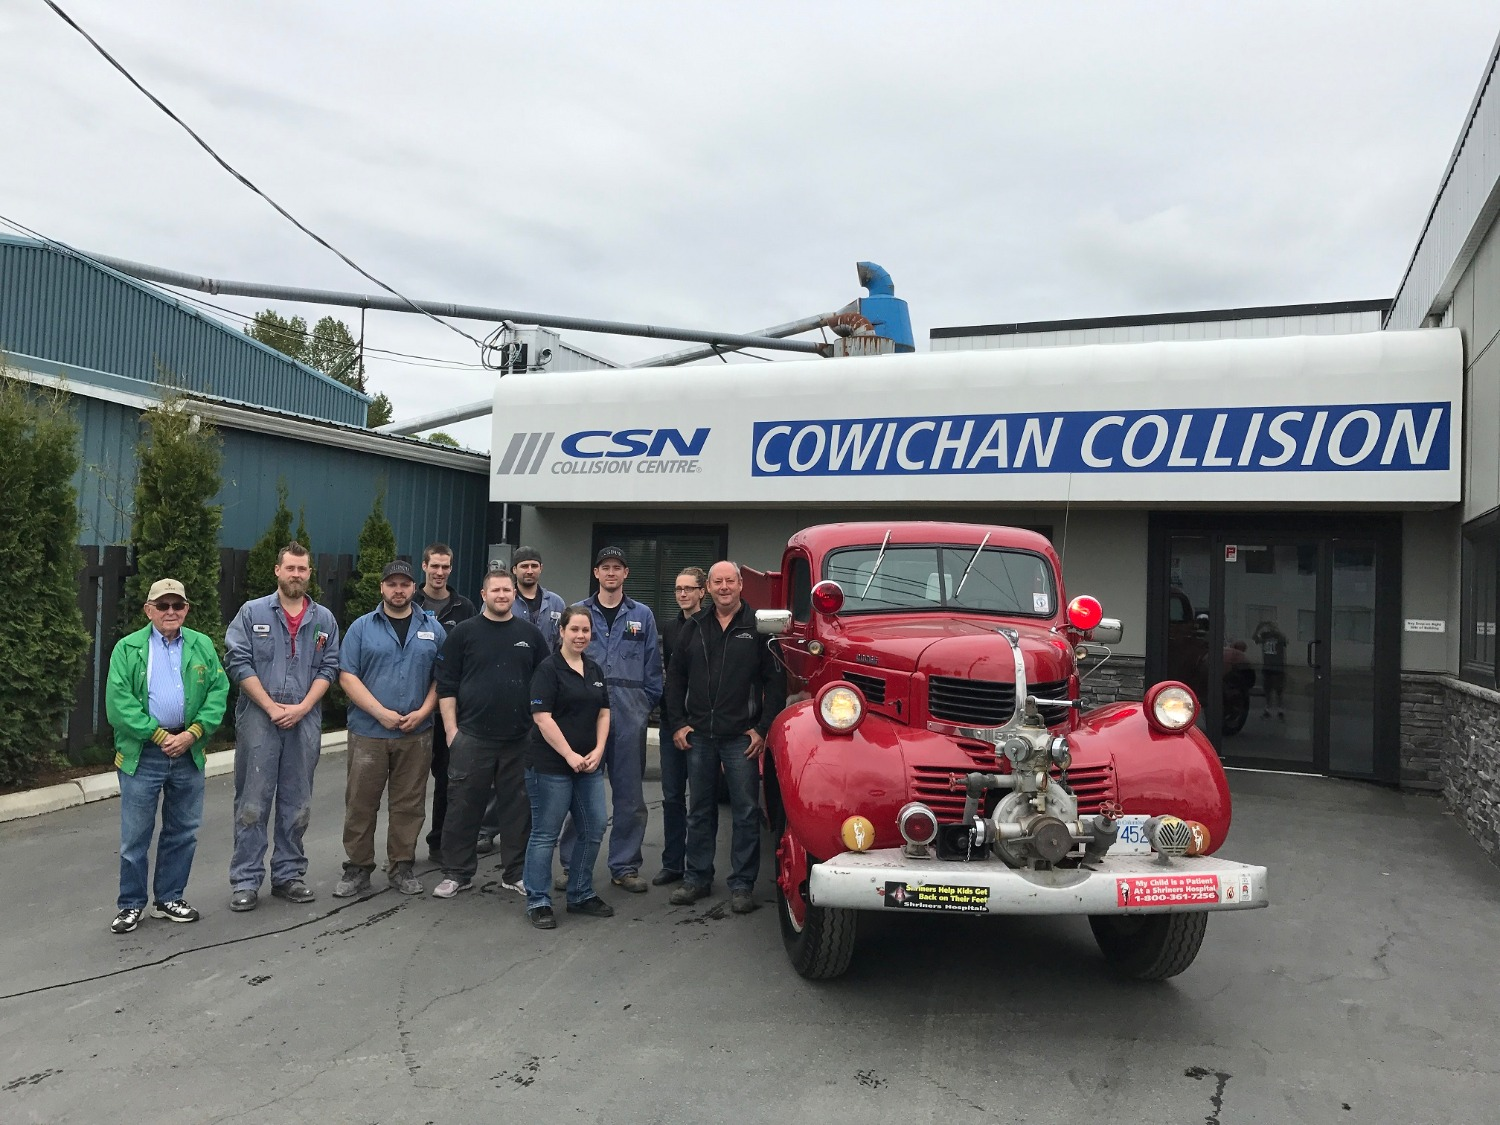 Cowichan Collision Firetruck painting